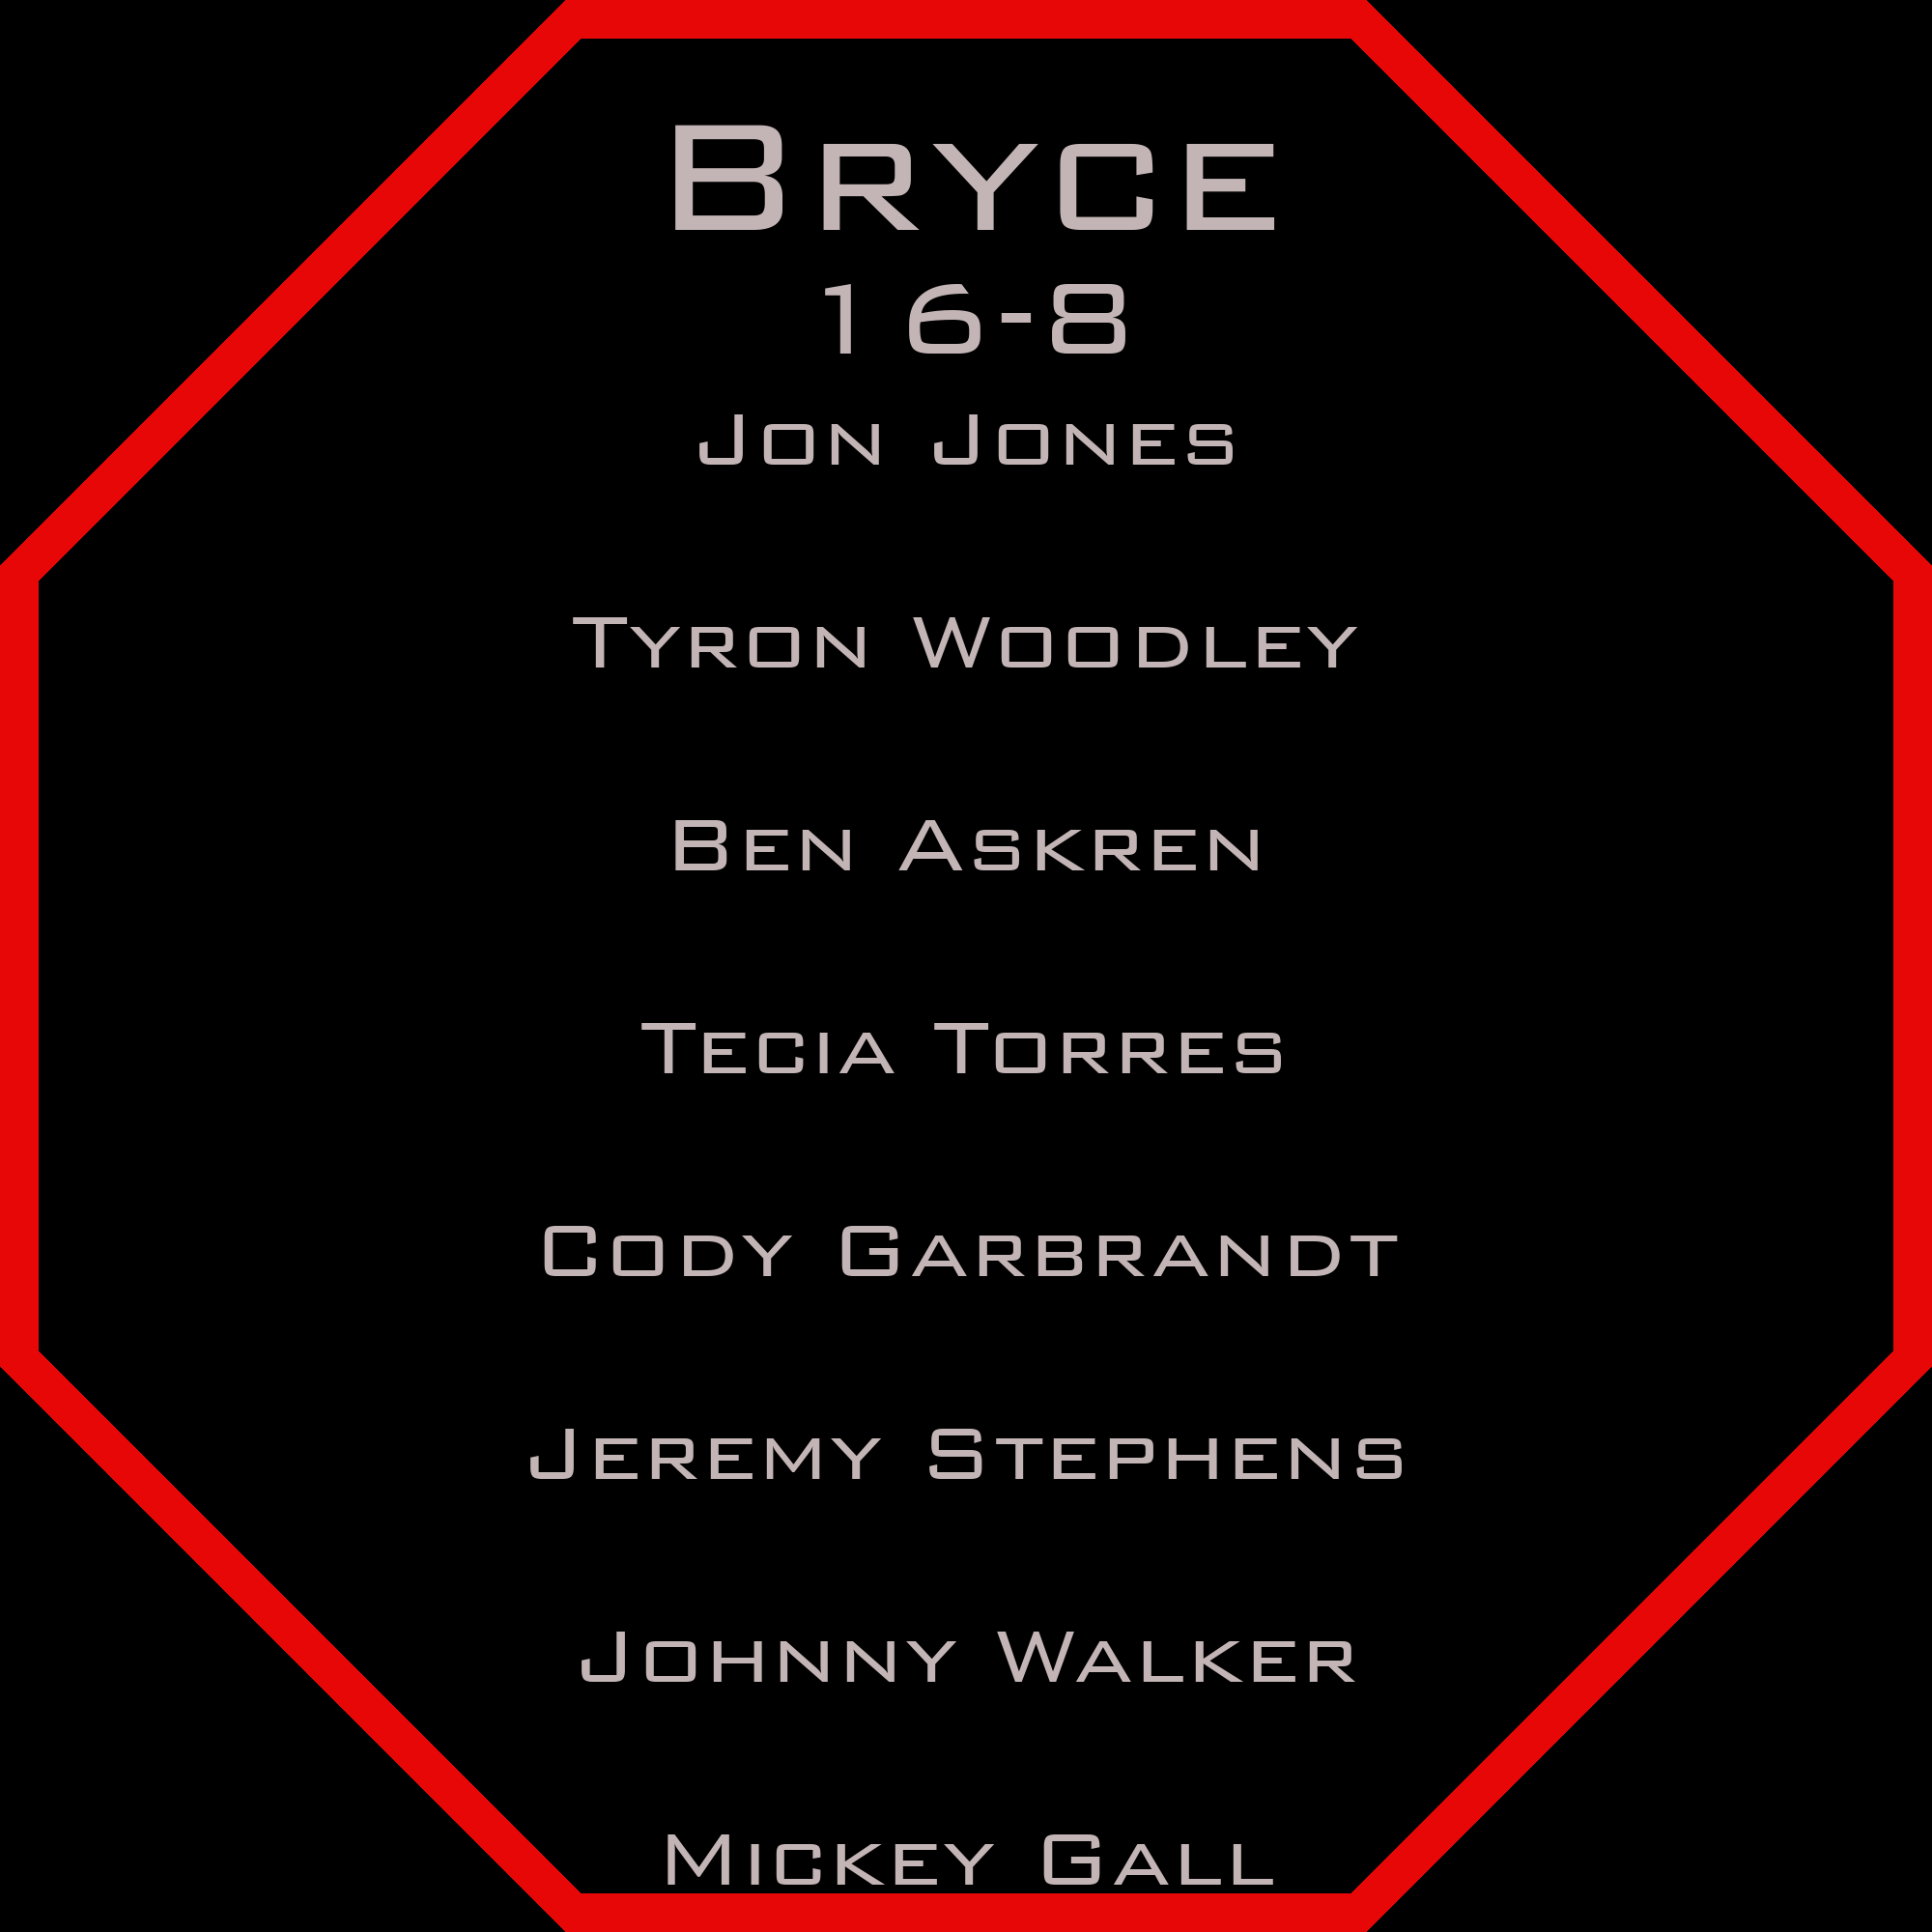 bryce 235.png